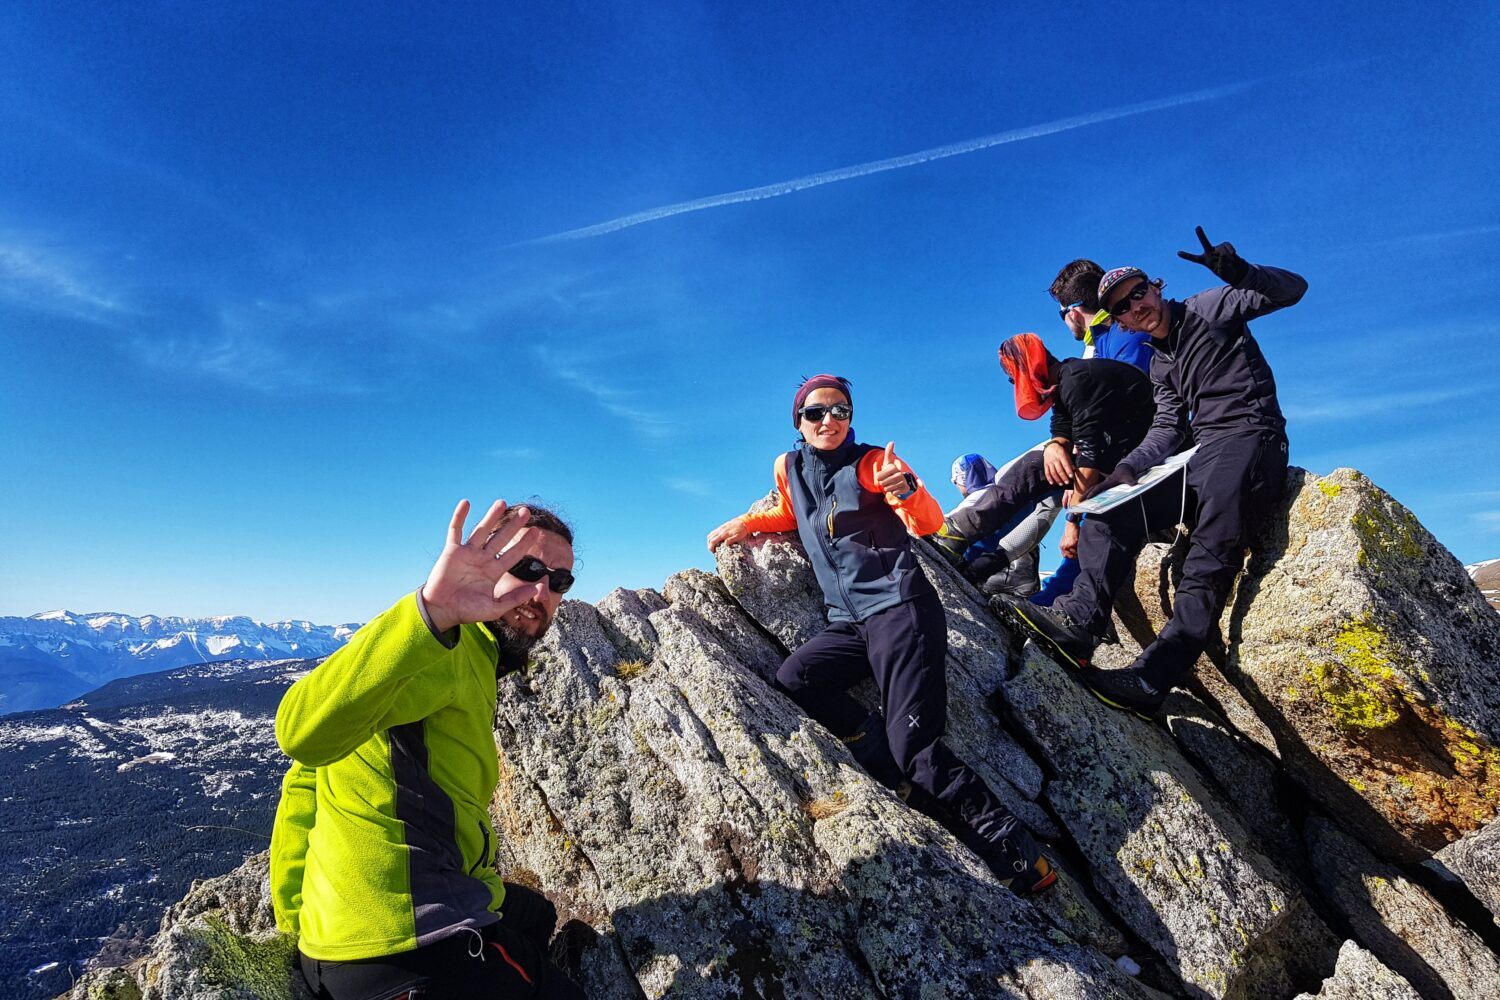 Small group personalized hiking tours in the Pyrenees